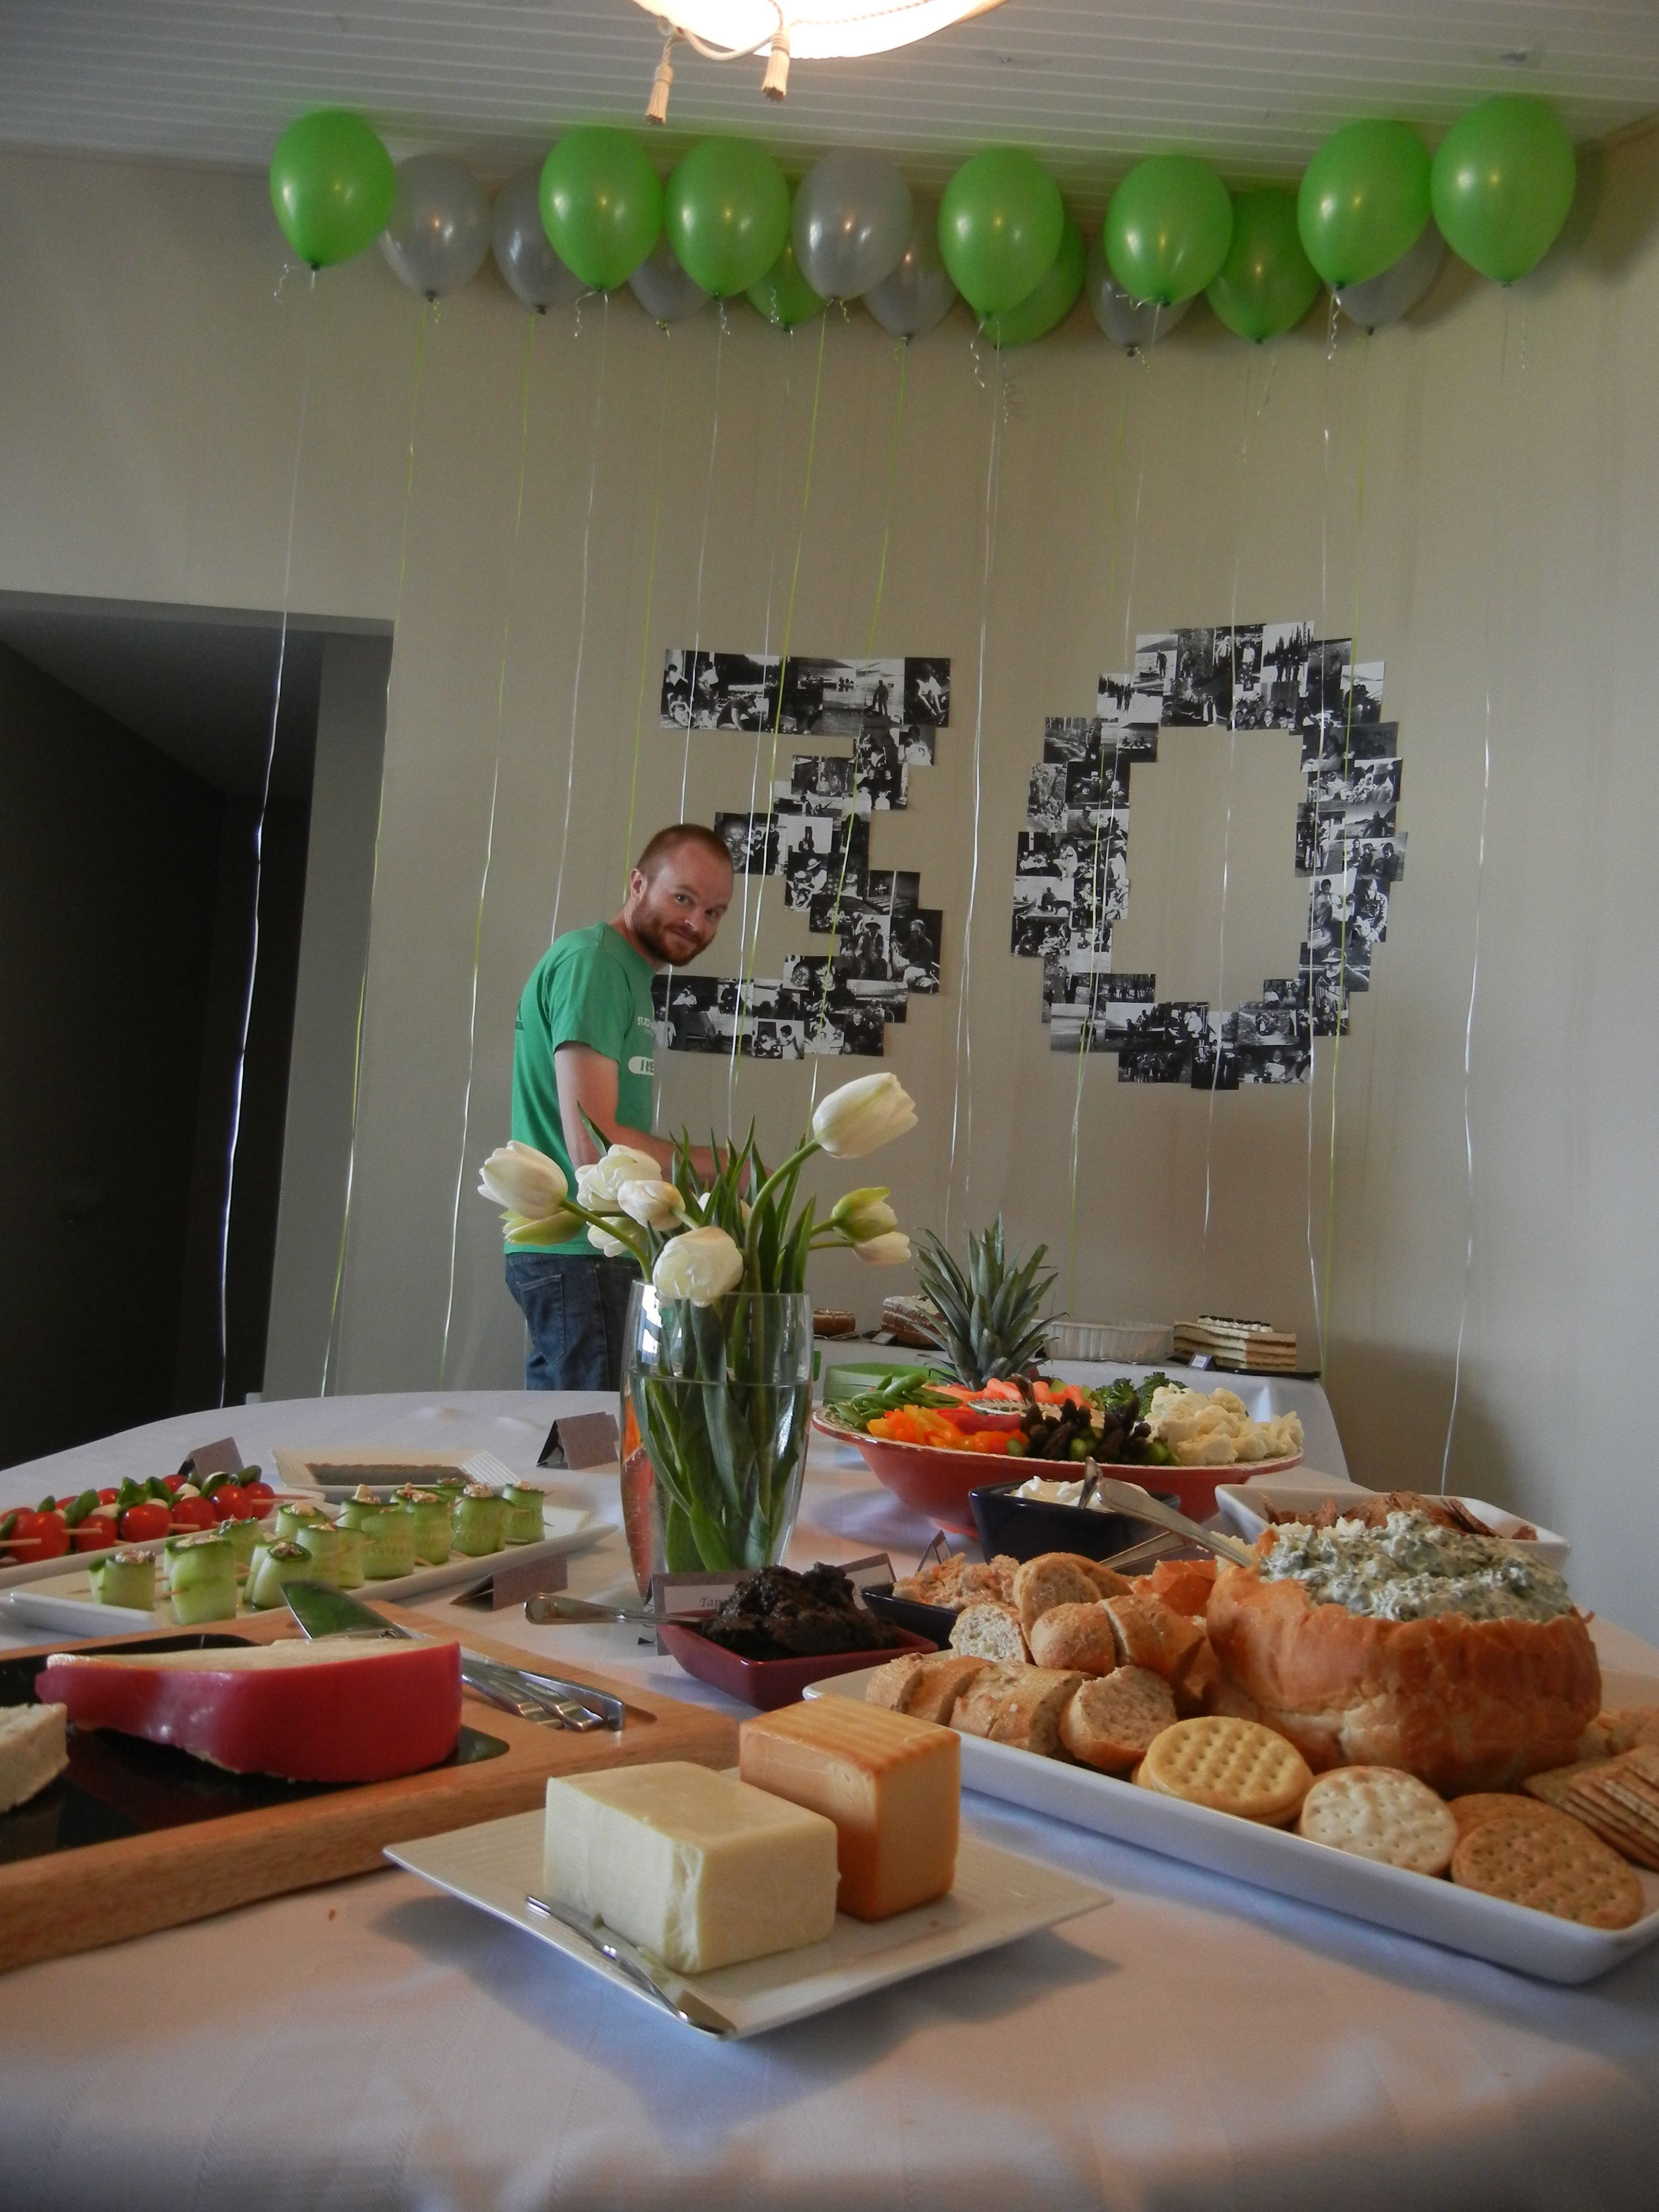 For my parent's 30th Anniversary party we created this